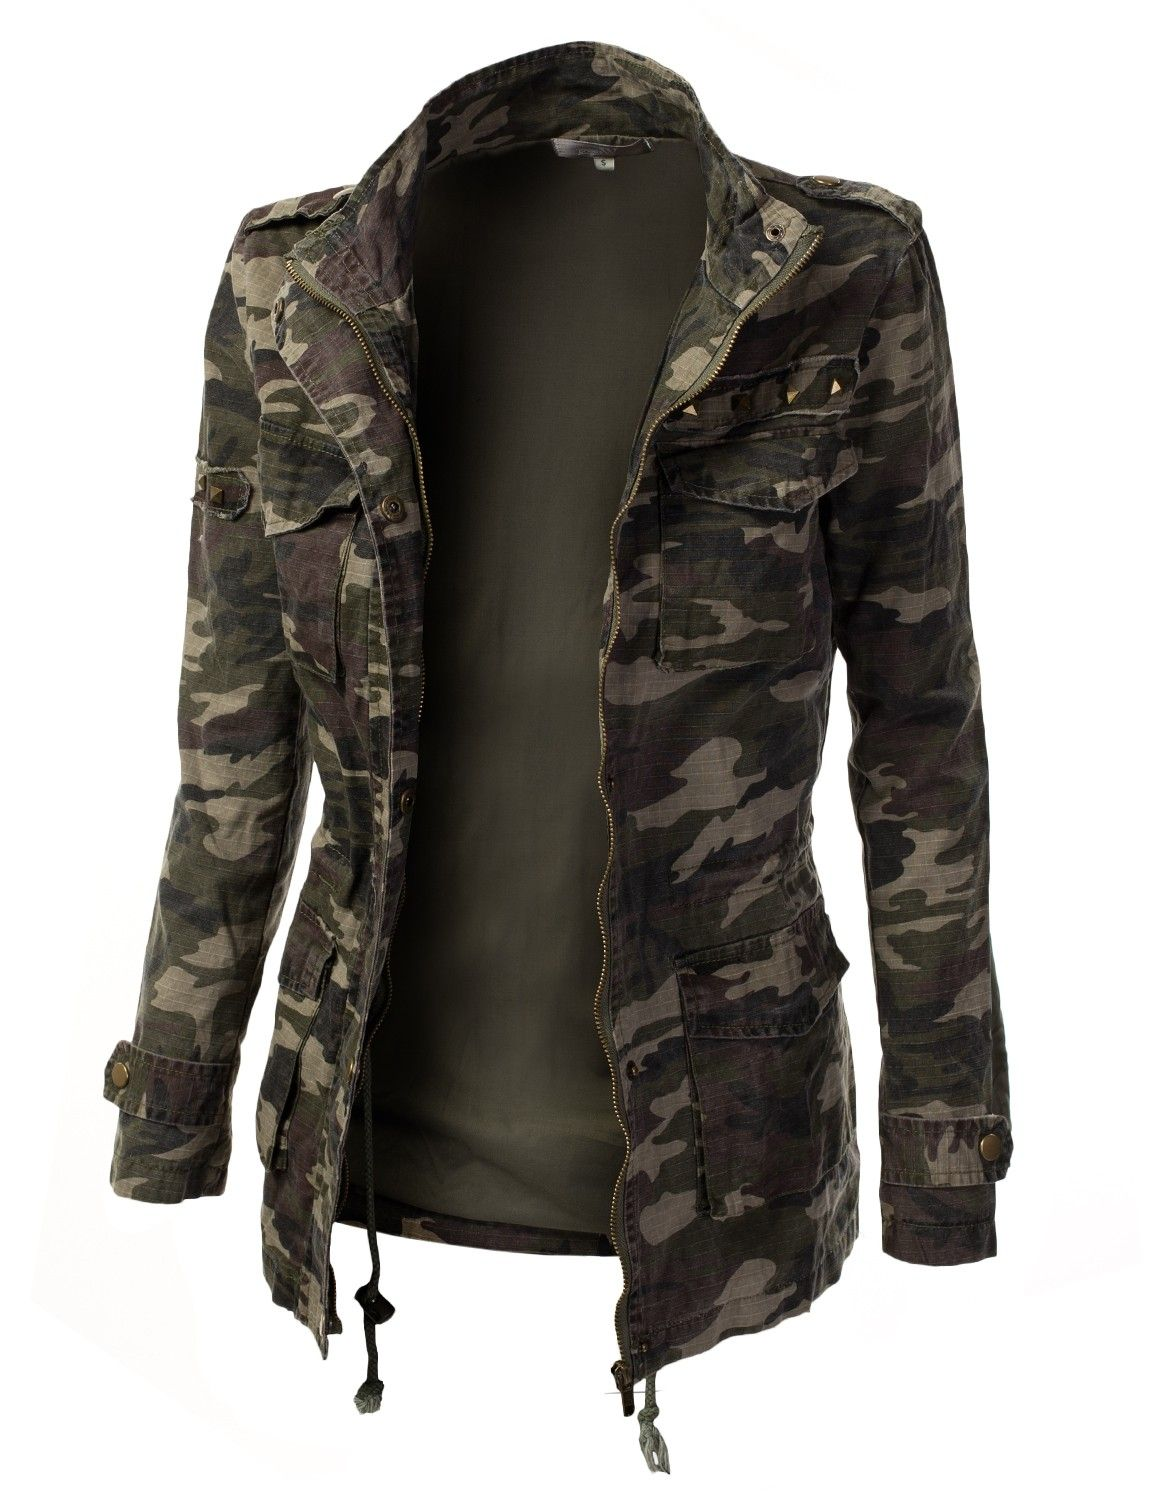 Womens Military Jacket | Home Womens Trendy Camo Military Jacket With Studs | My Style ...